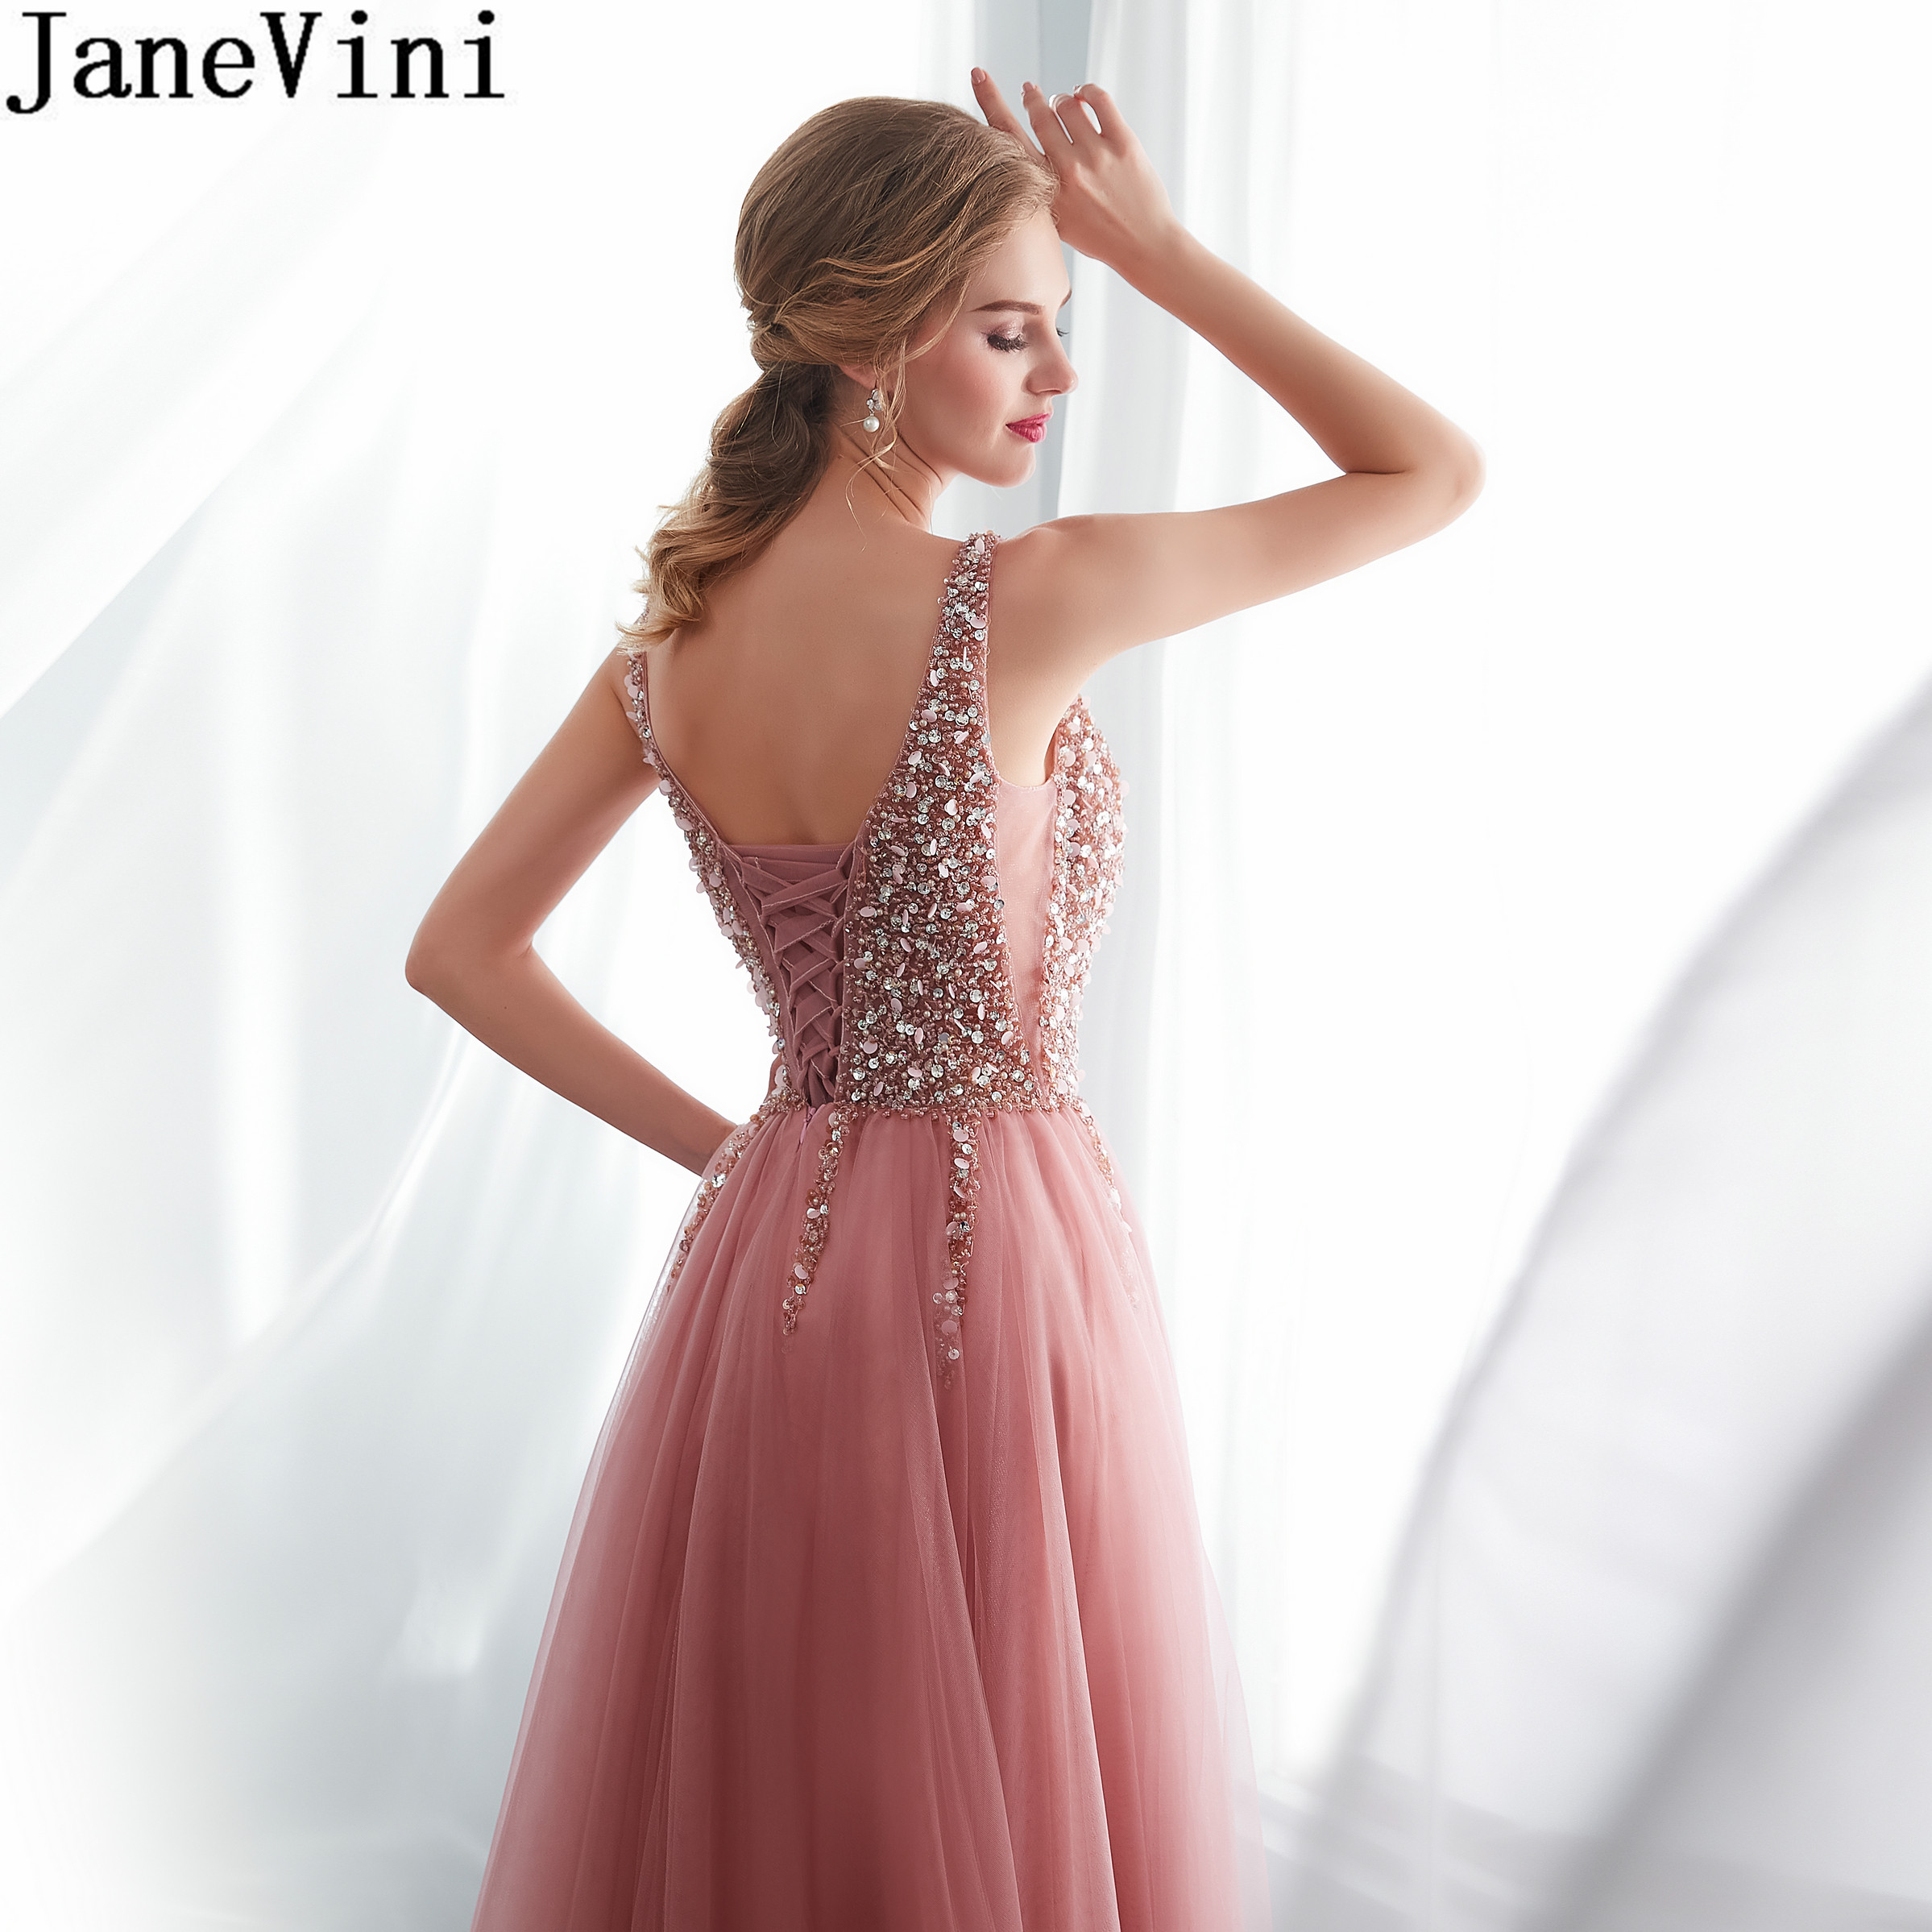 JaneVini Sexy High Split Prom Dresses Girls Gala Formal Dress Long Beading Sequined Dusty Pink Tulle A Line Evening Gowns 2020